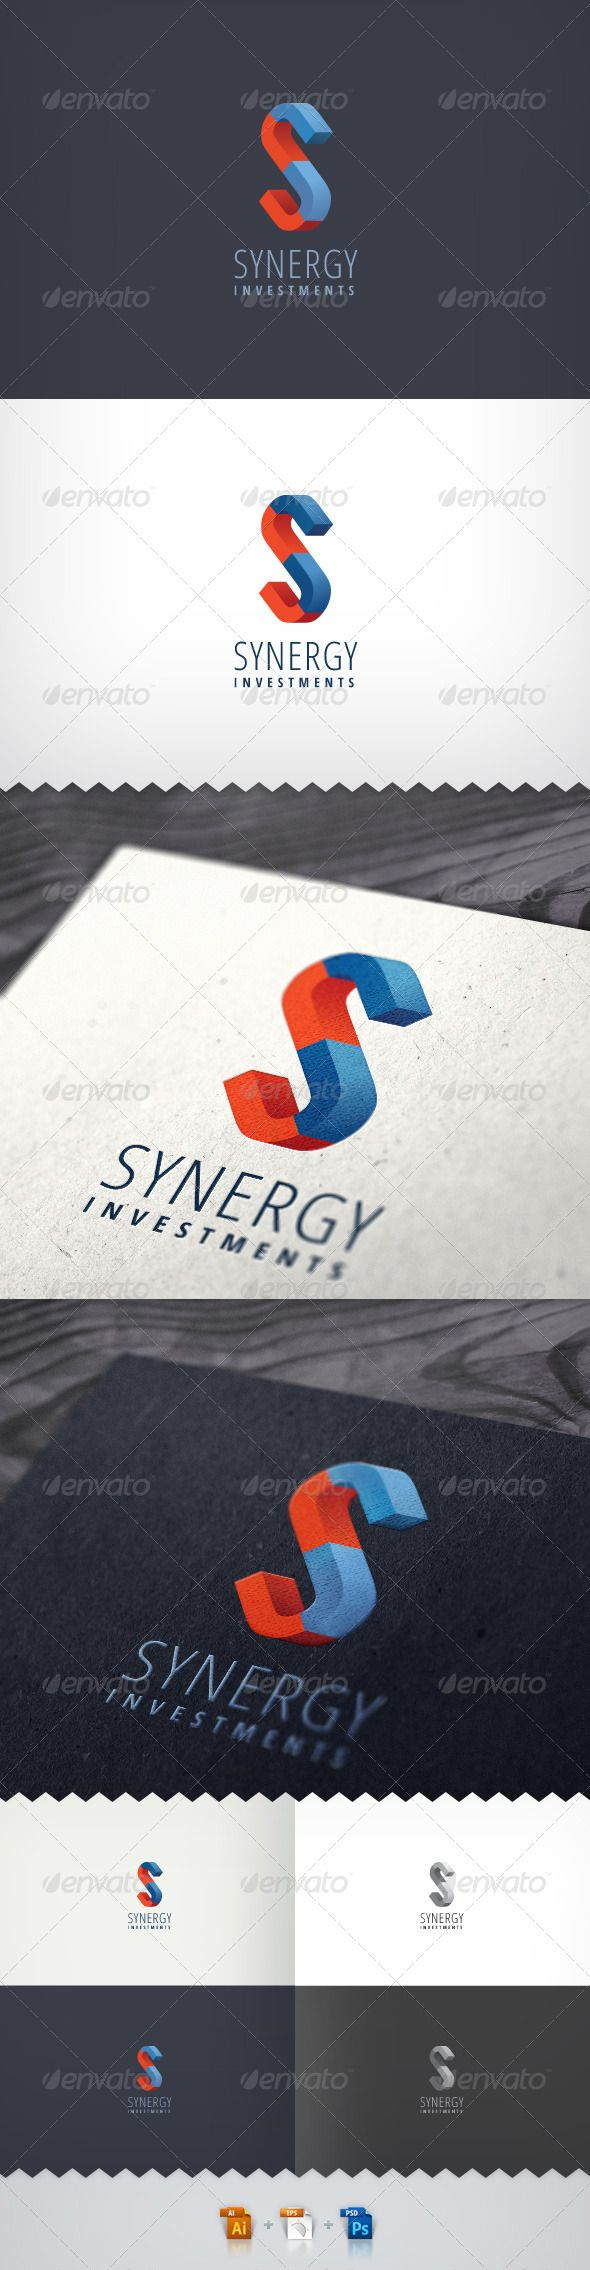 Synergy investments logos cara menghitung margin forex